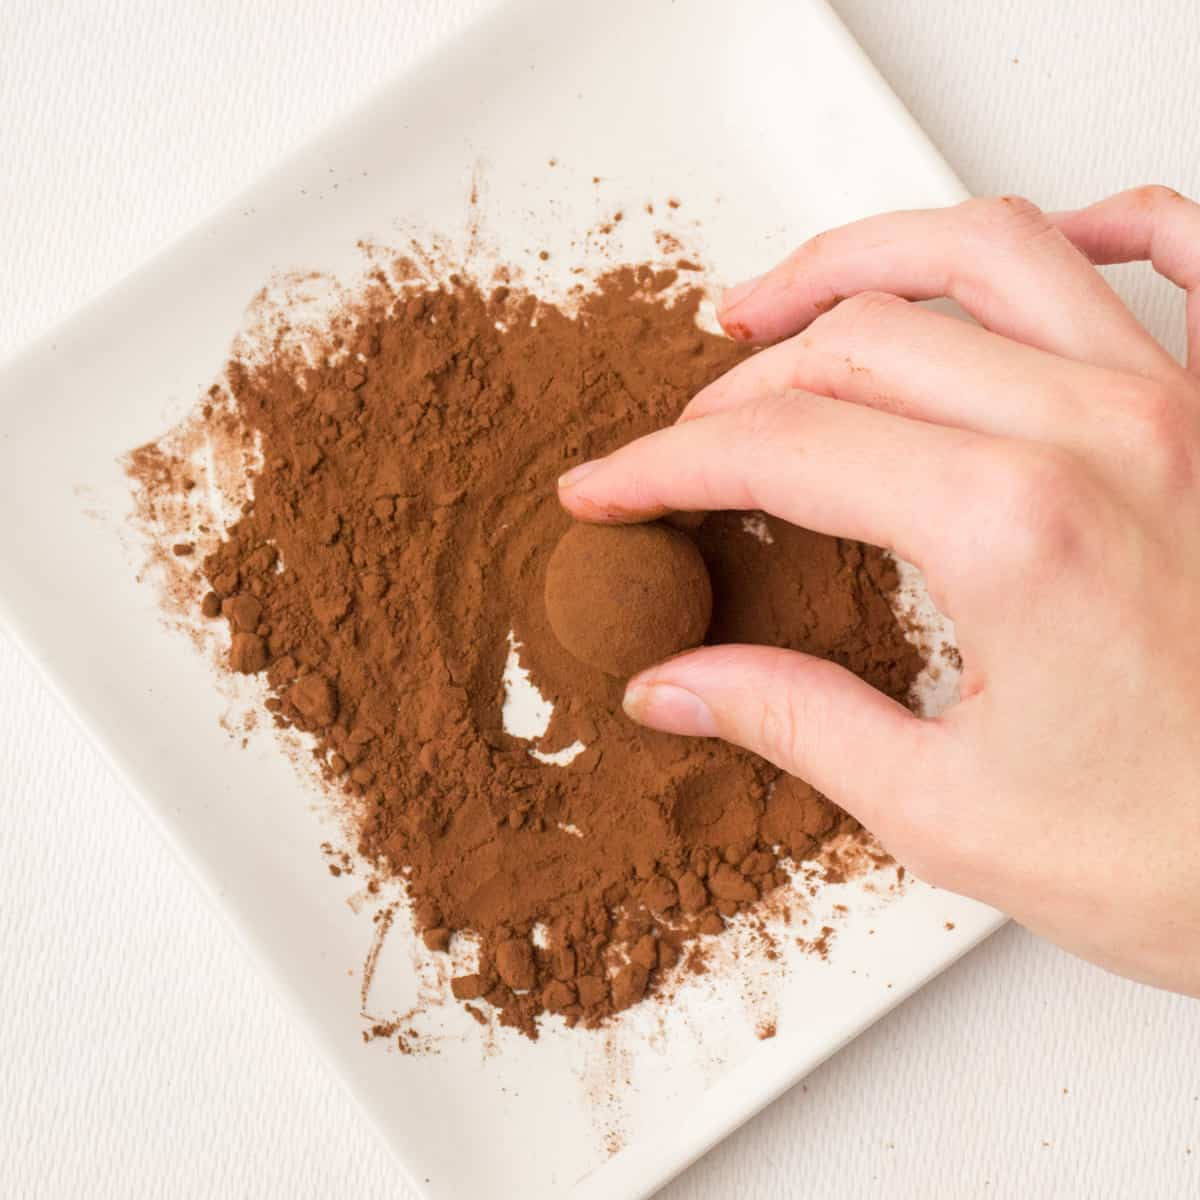 Rolling the truffle in cocoa powder on a square white plate.